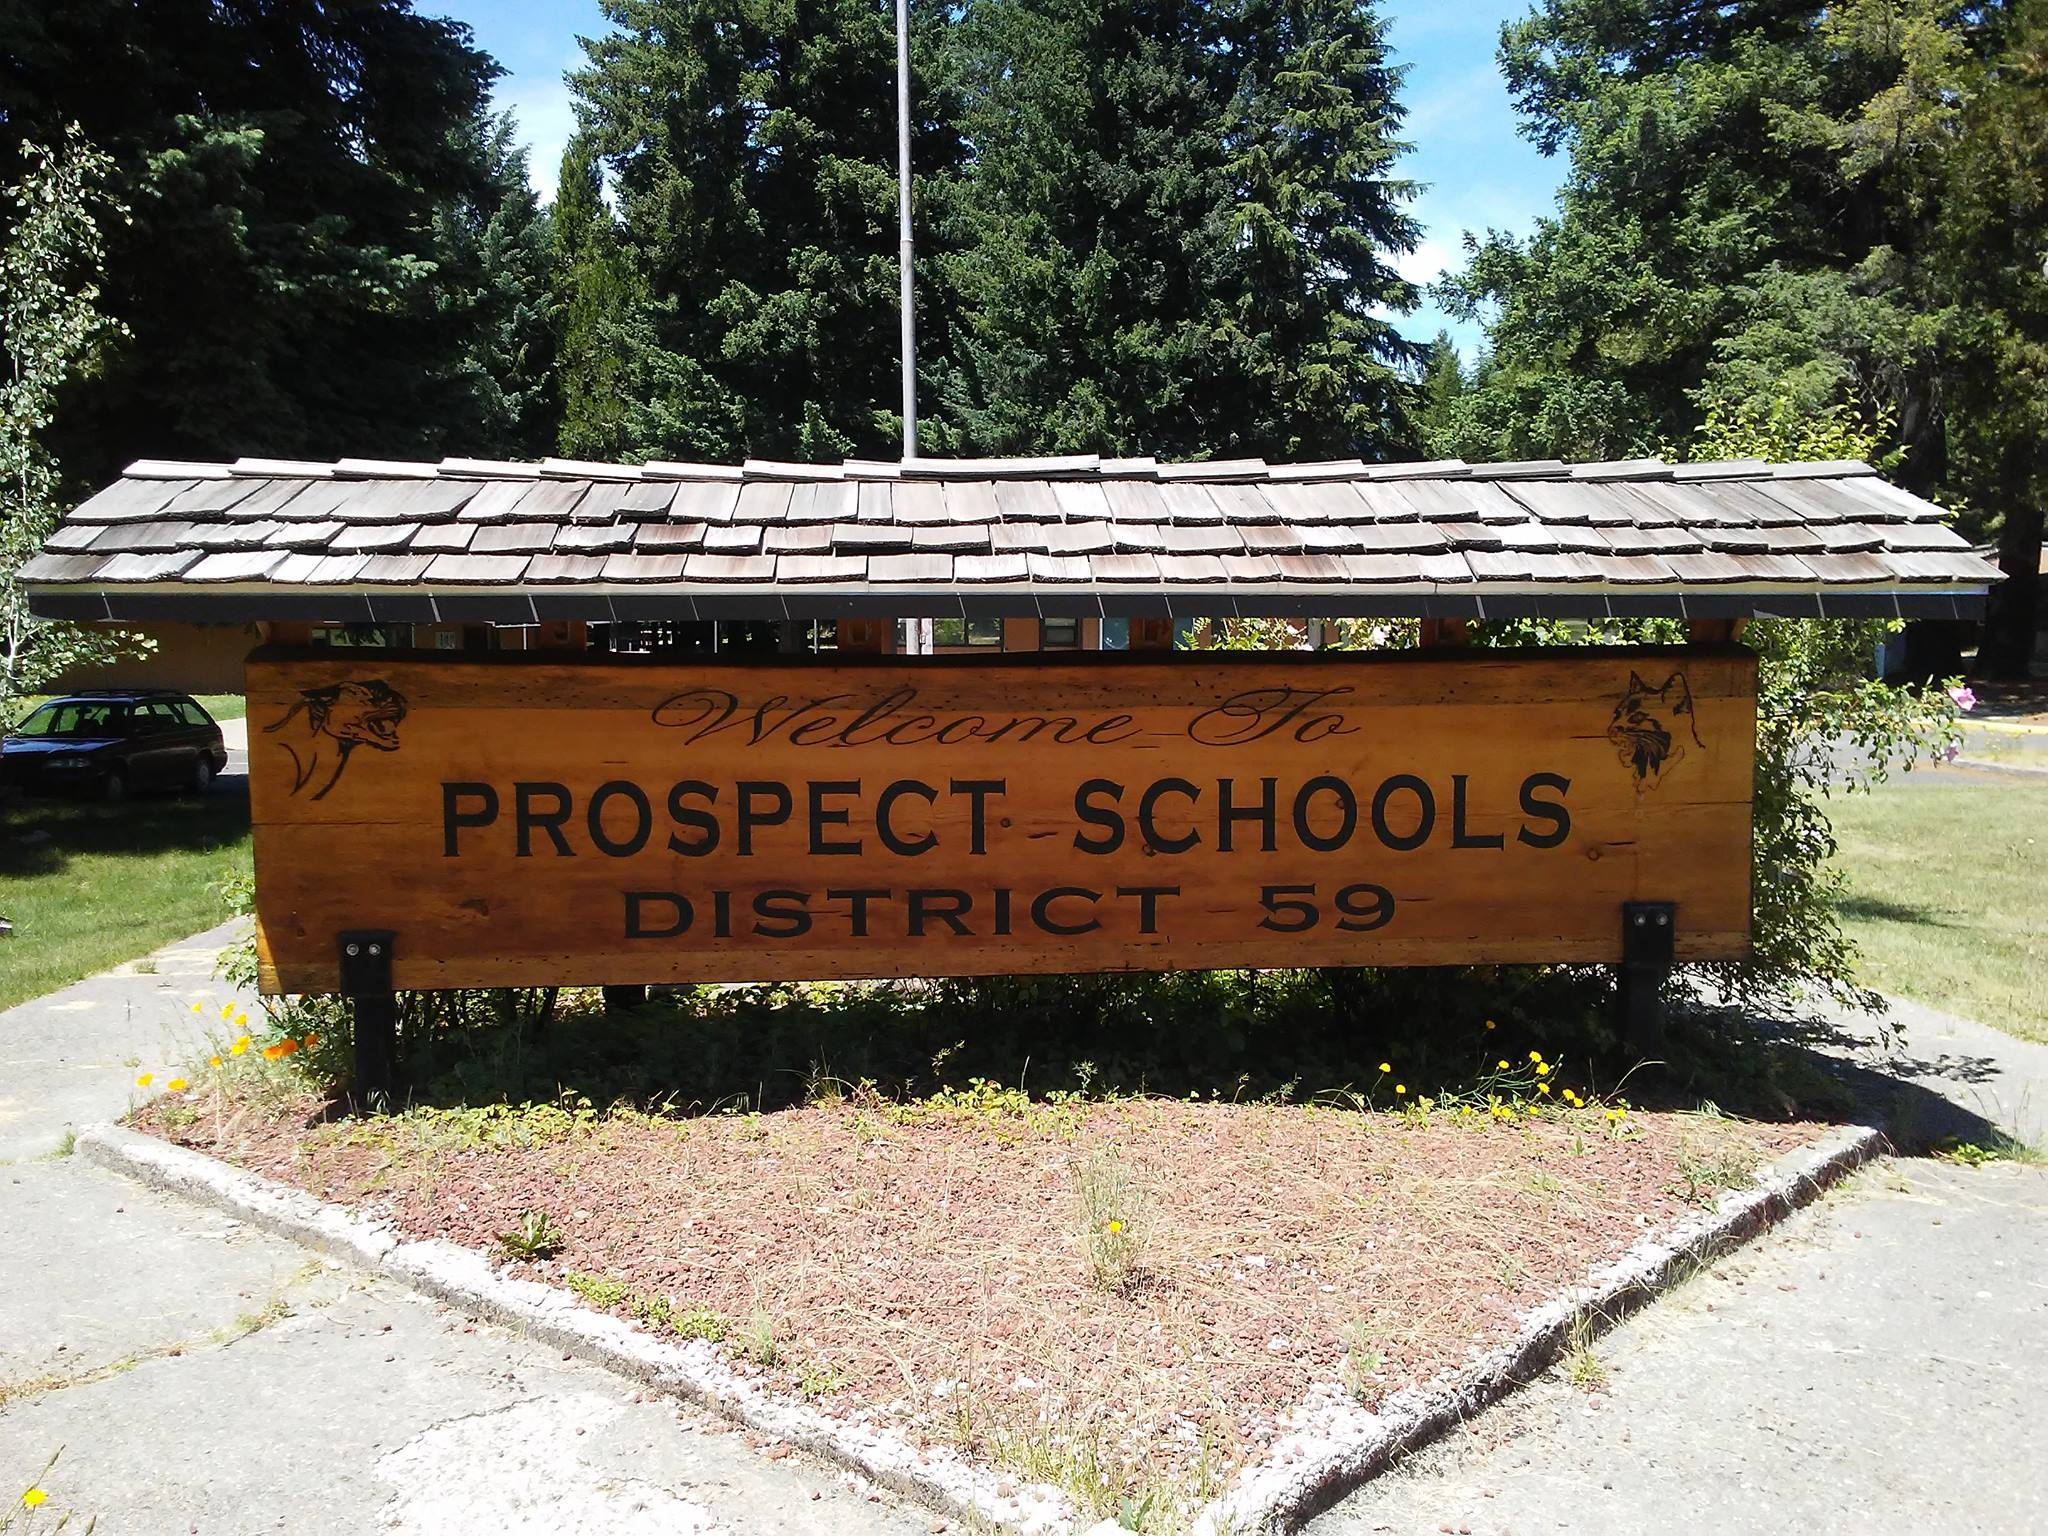 Welcome to Prospect Schools - District 59